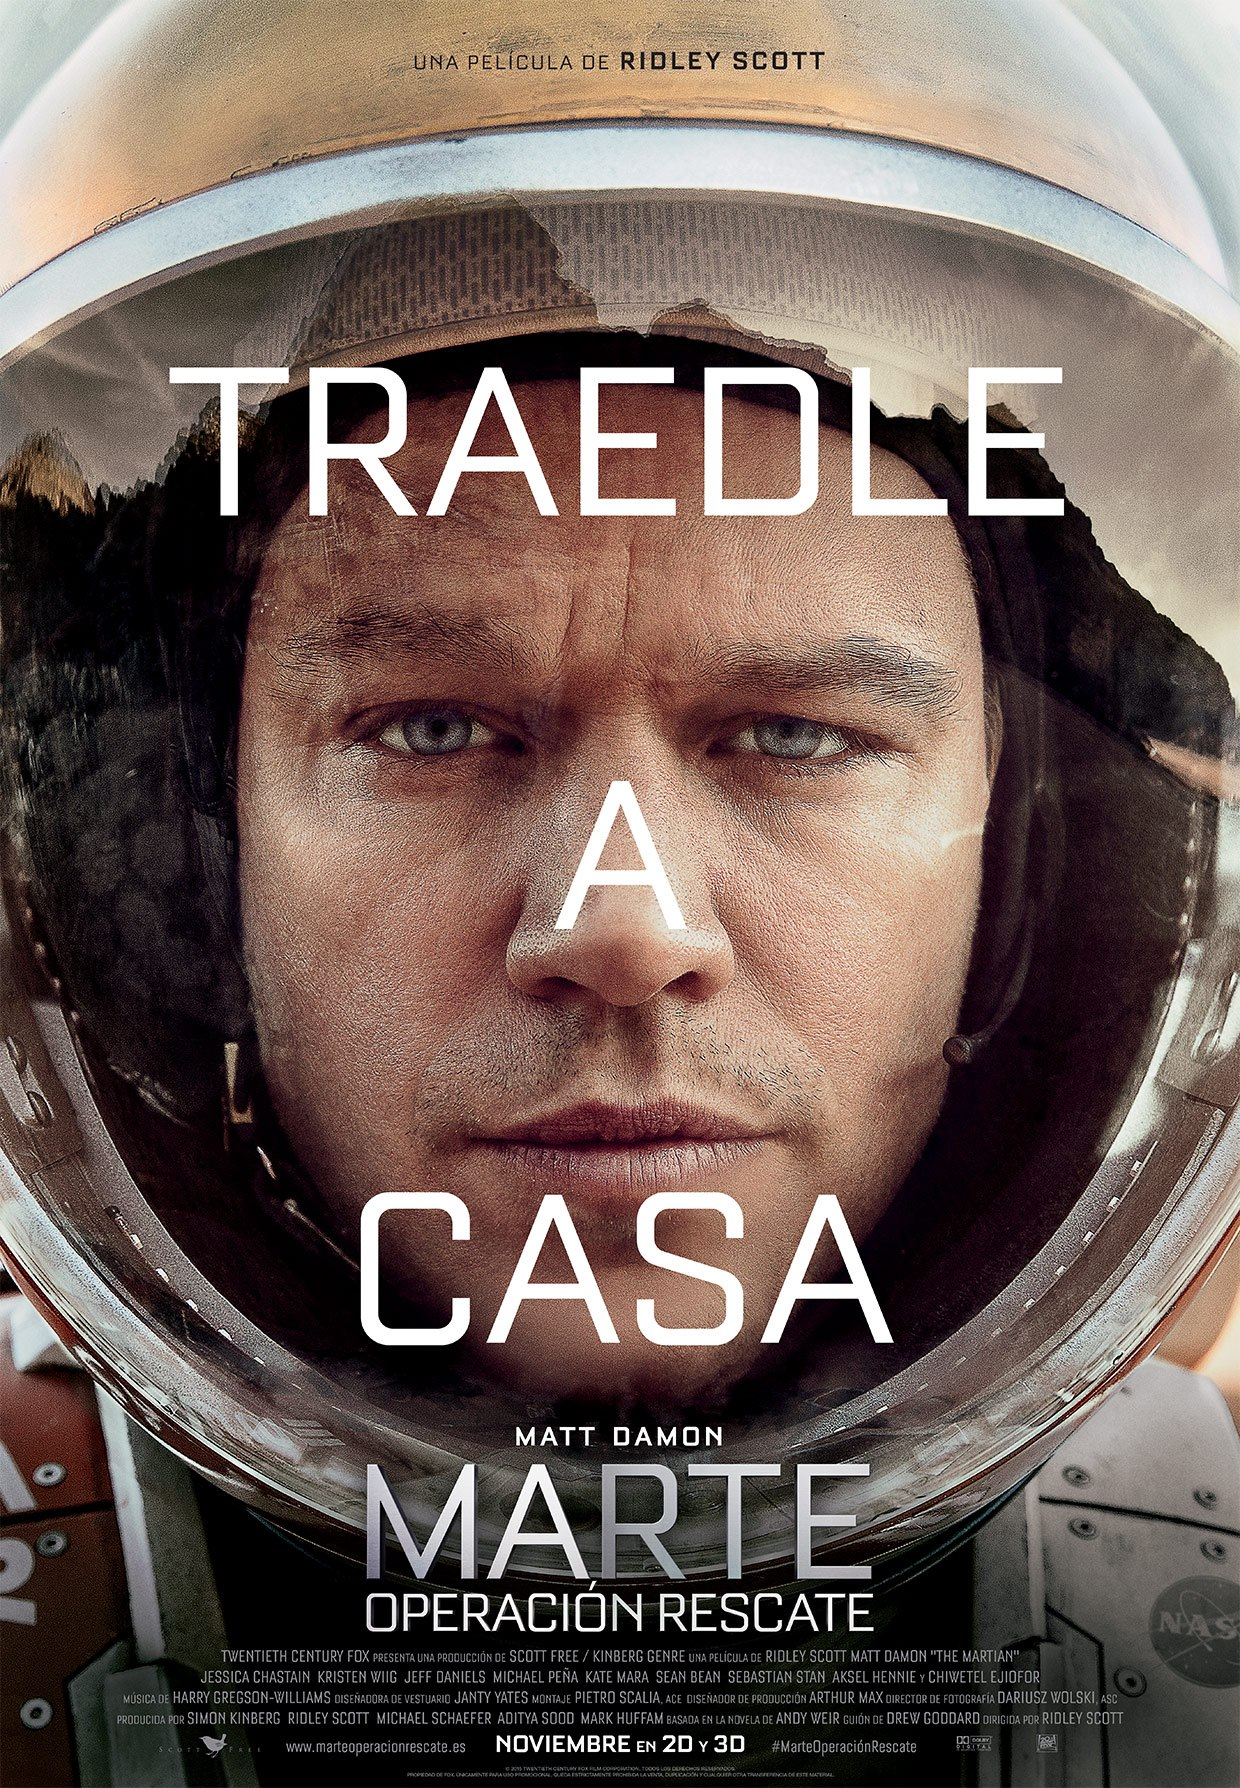 Trailer de Marte (The Martian)